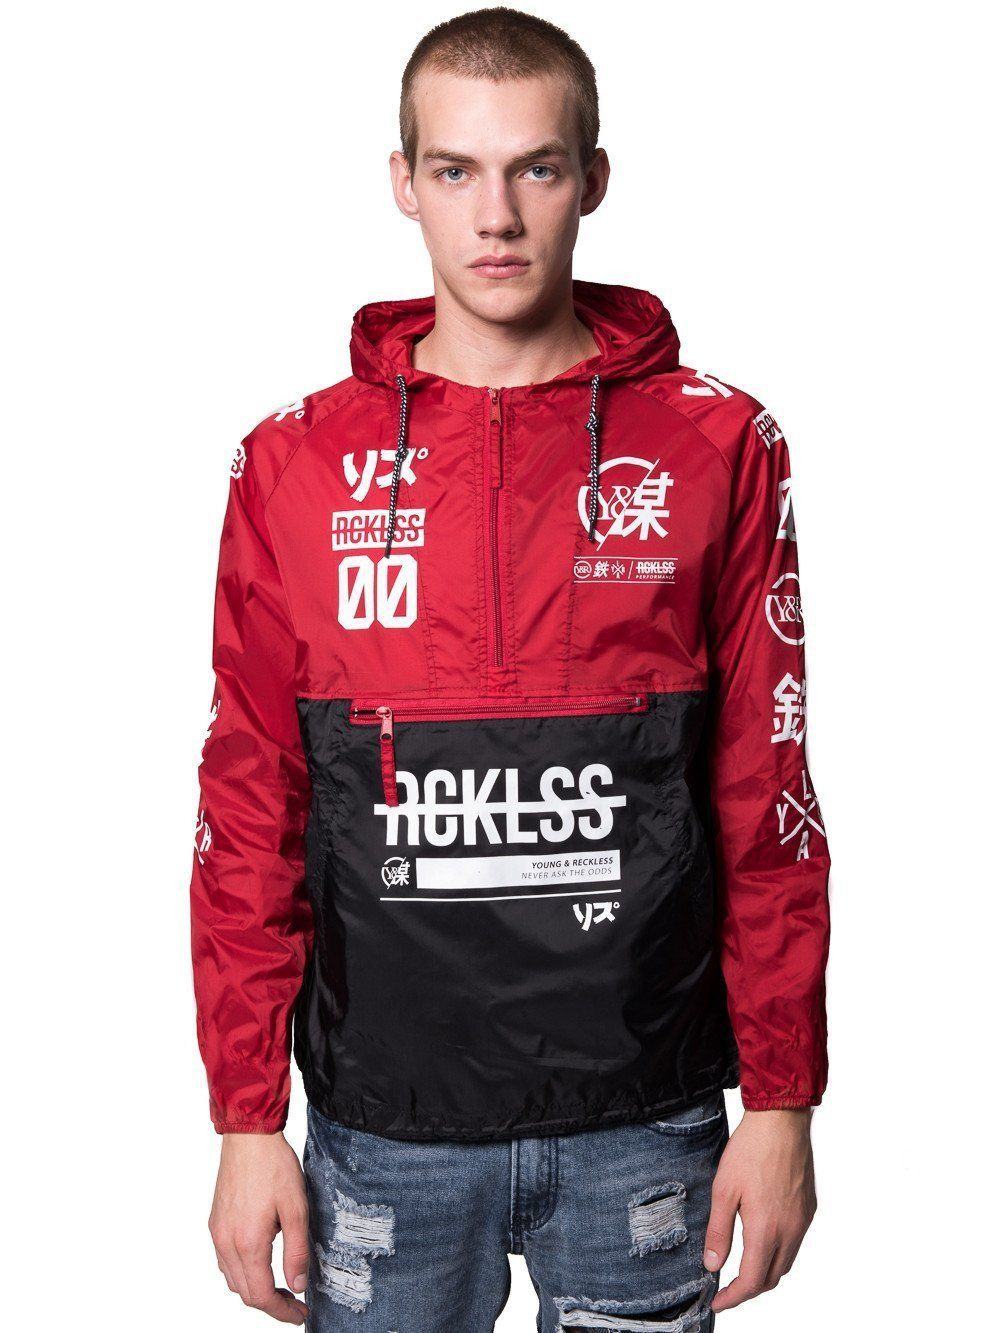 Young and Reckless Mens - Outerwear - Lightweight Jackets   Bombers Strike  Thru Windbreaker- Black Red White c5f01b718